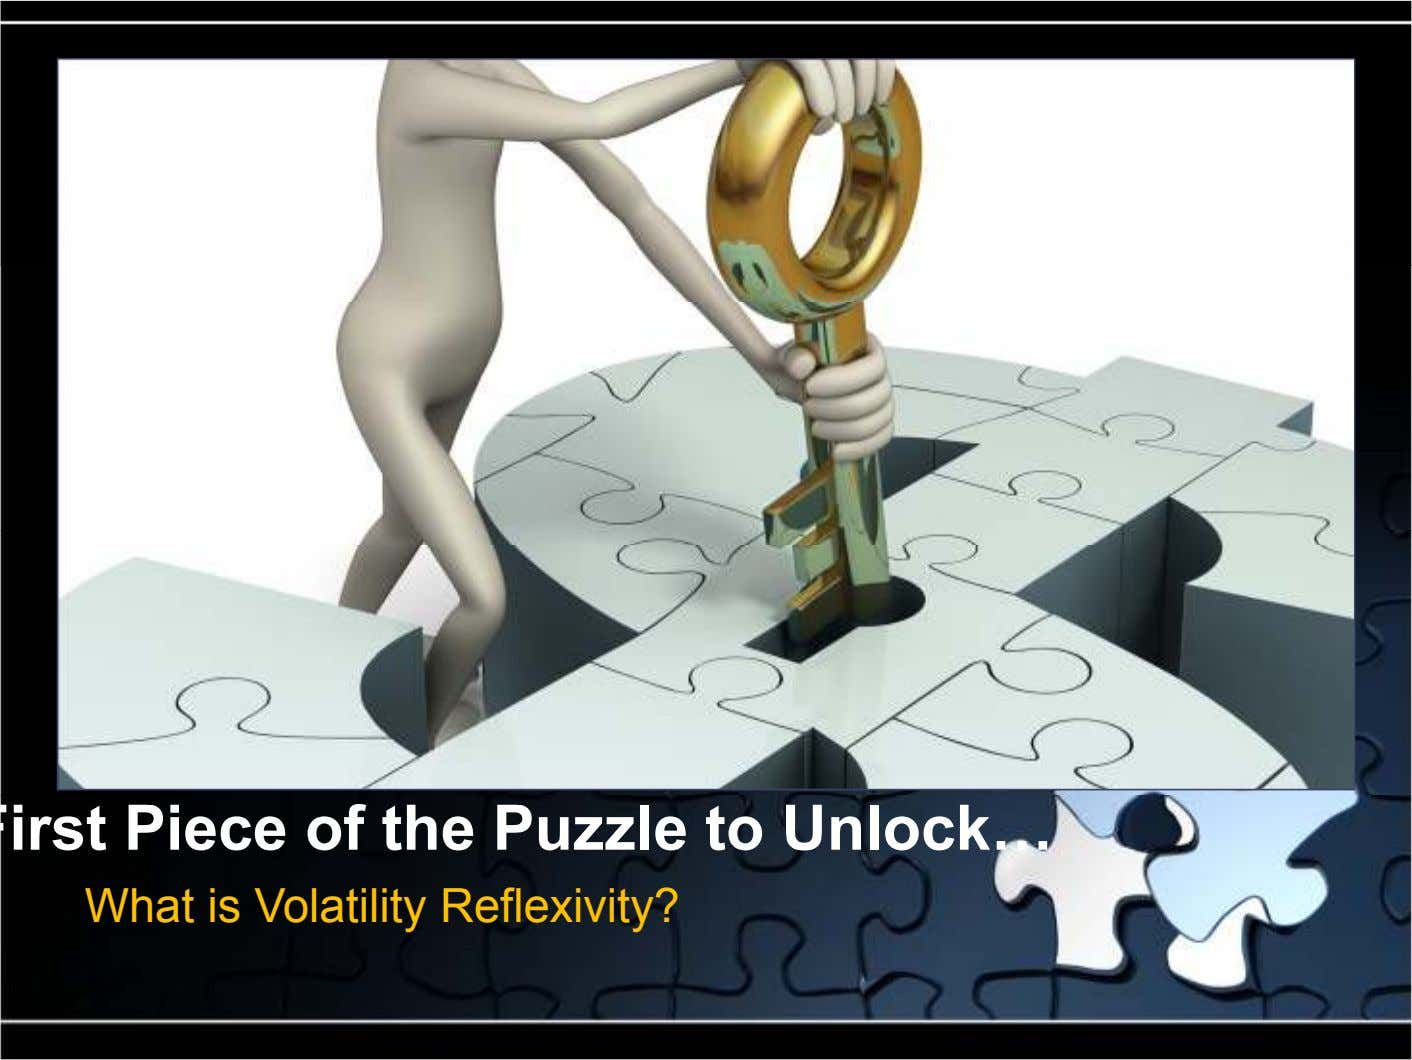 irst Piece of the Puzzle to Unlock What is Volatility Reflexivity?